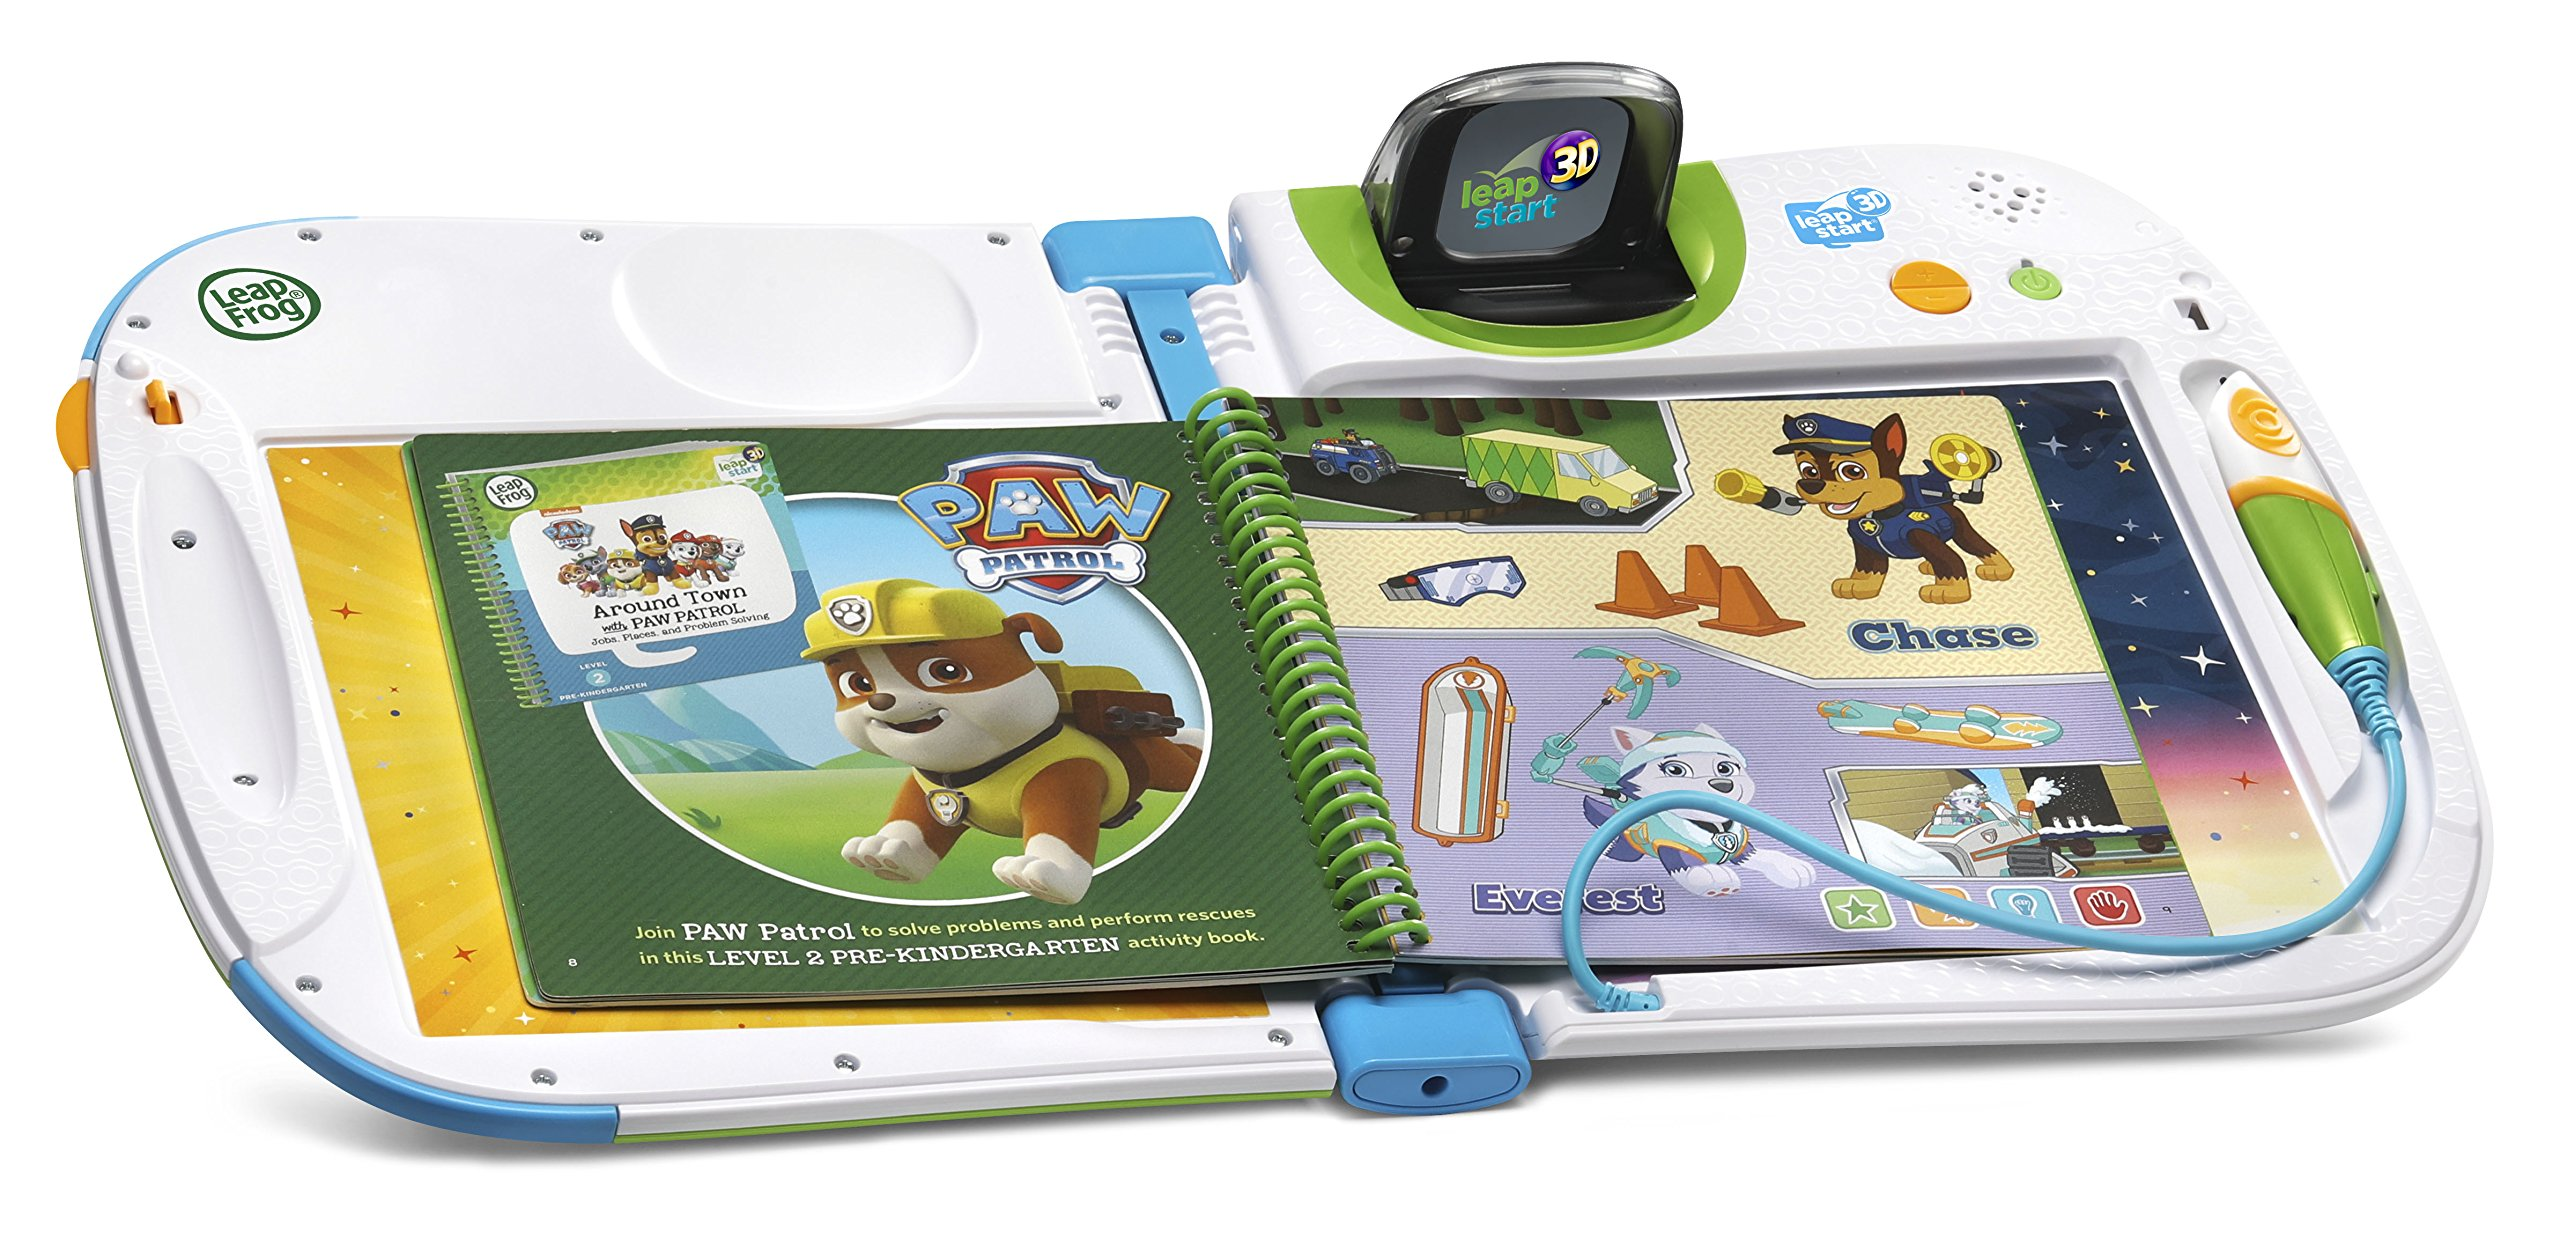 LeapFrog LeapStart 3D Interactive Learning System (Frustration Free Packaging), Green by LeapFrog (Image #8)